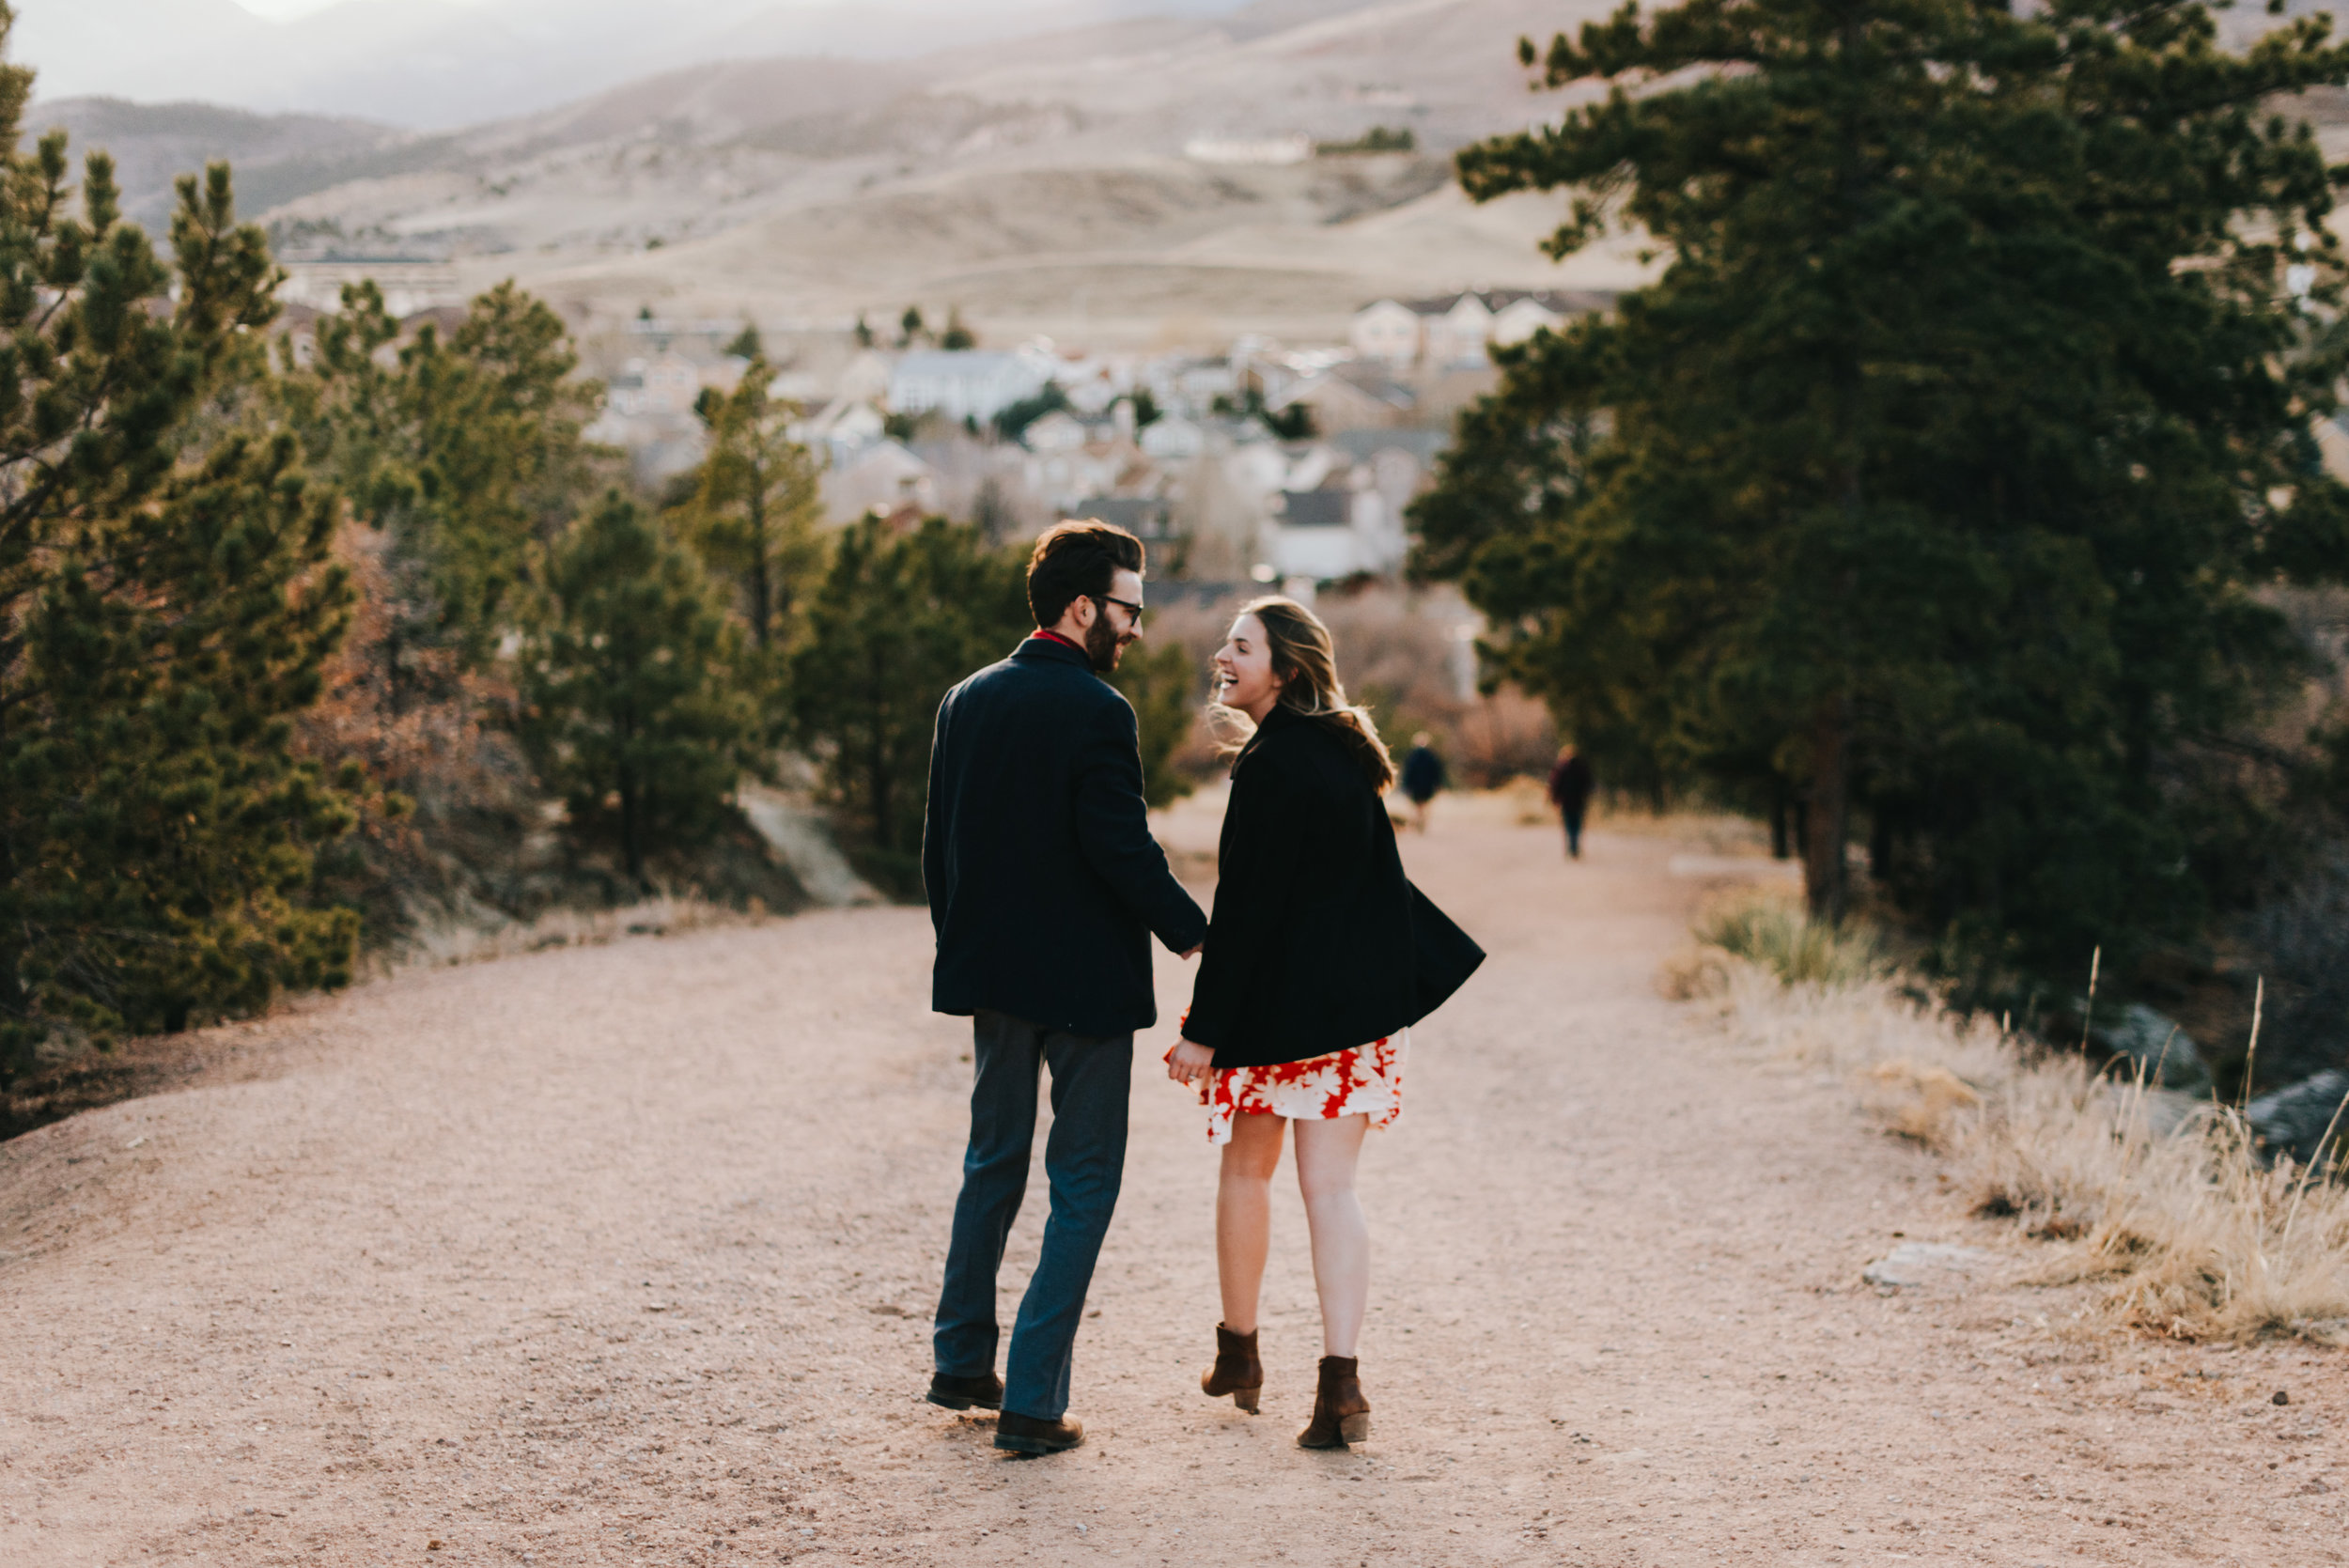 Ted and Rachel, laughing as they walk.